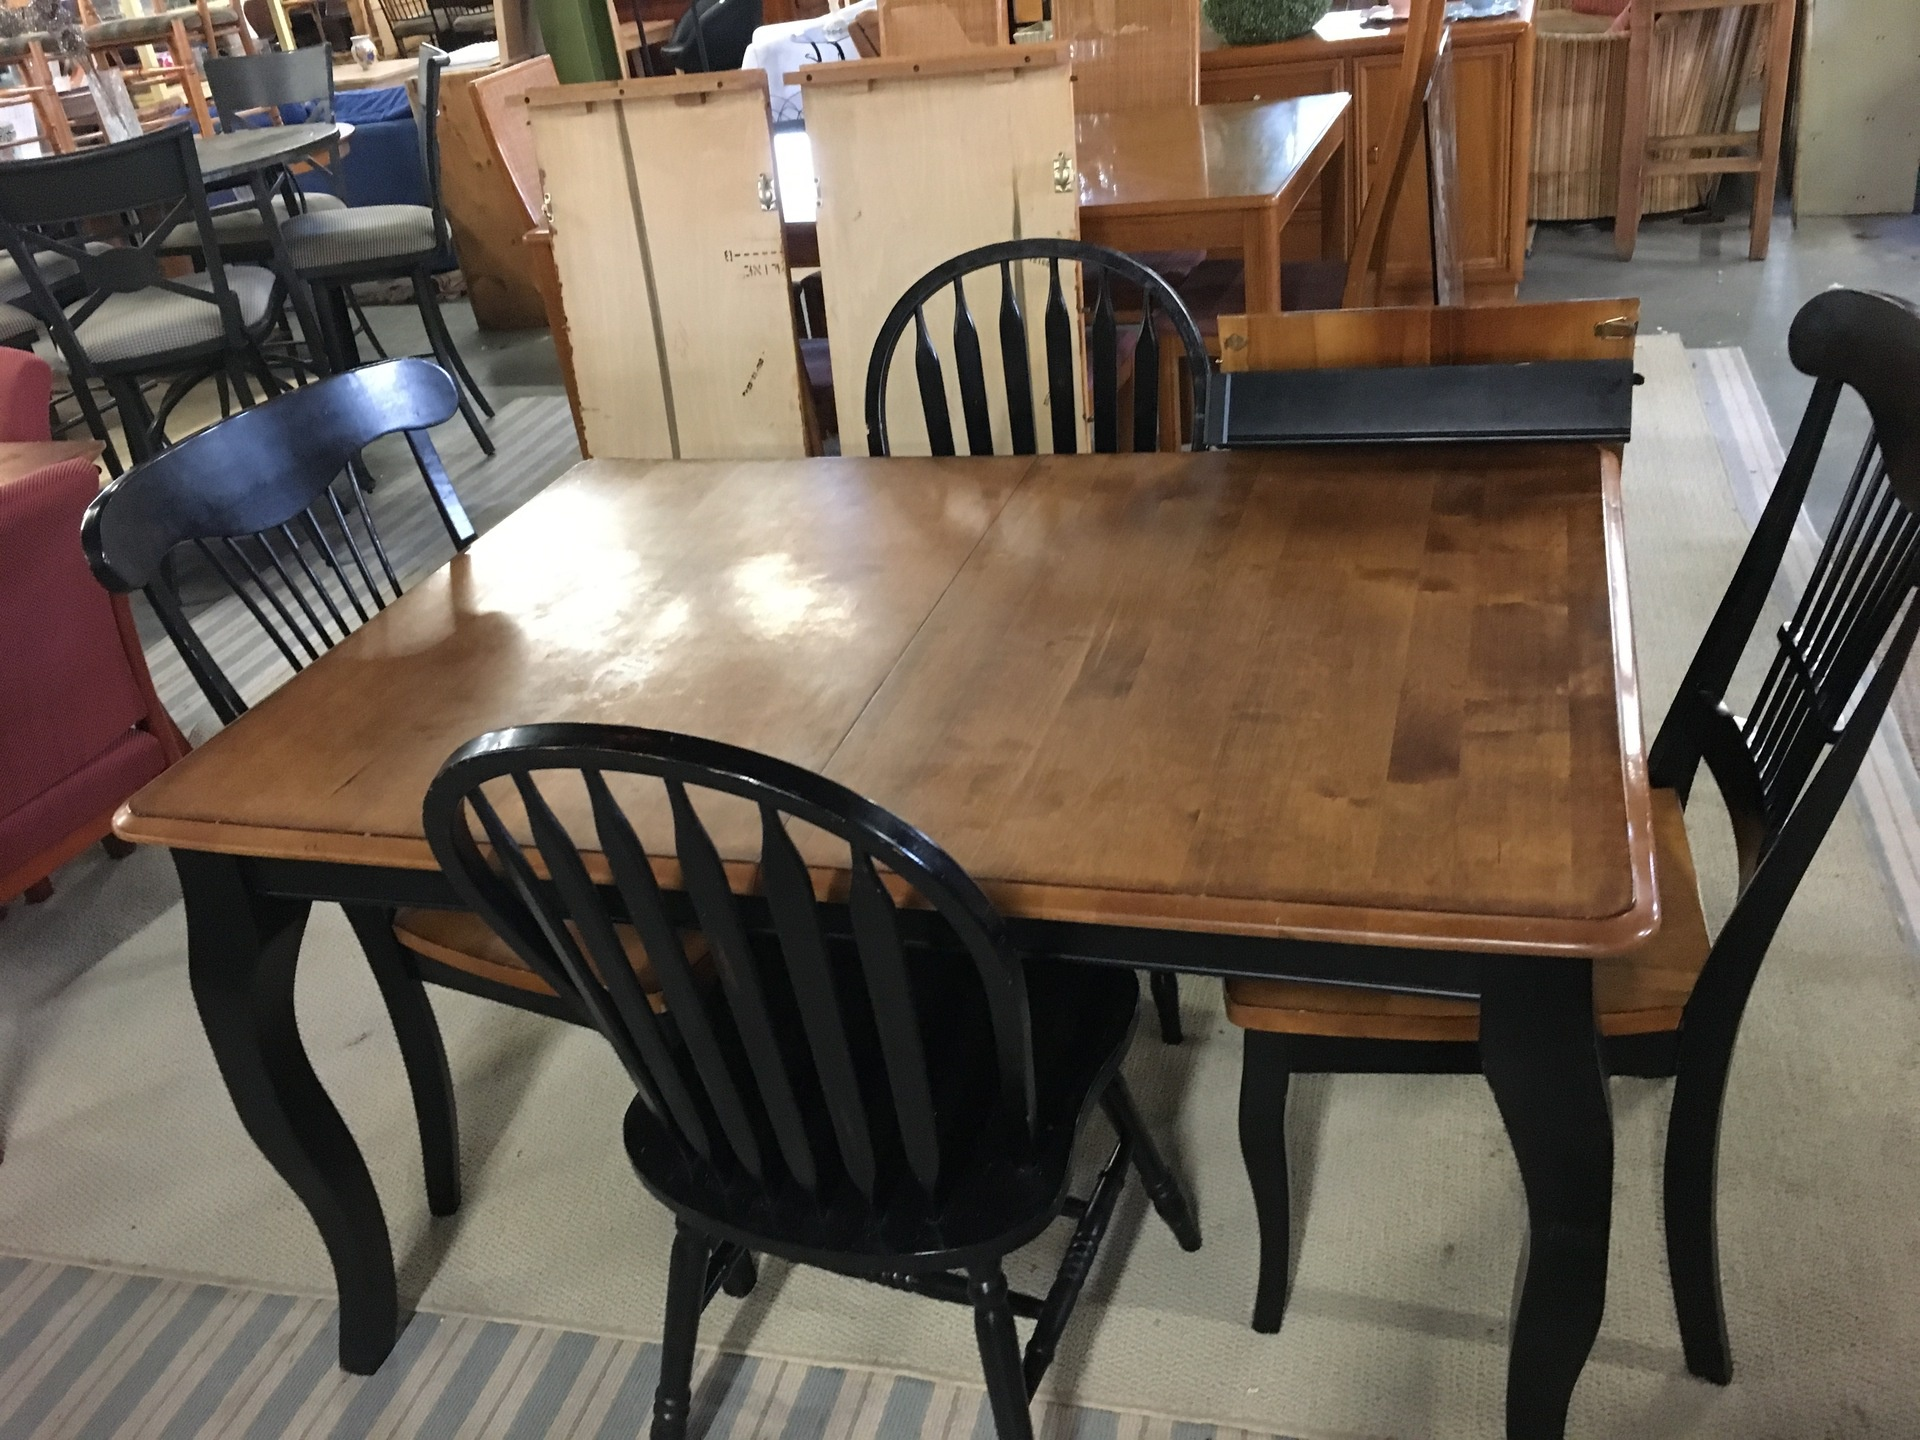 Dining table sets 4 chairs - Dining Table Set 4 Chairs